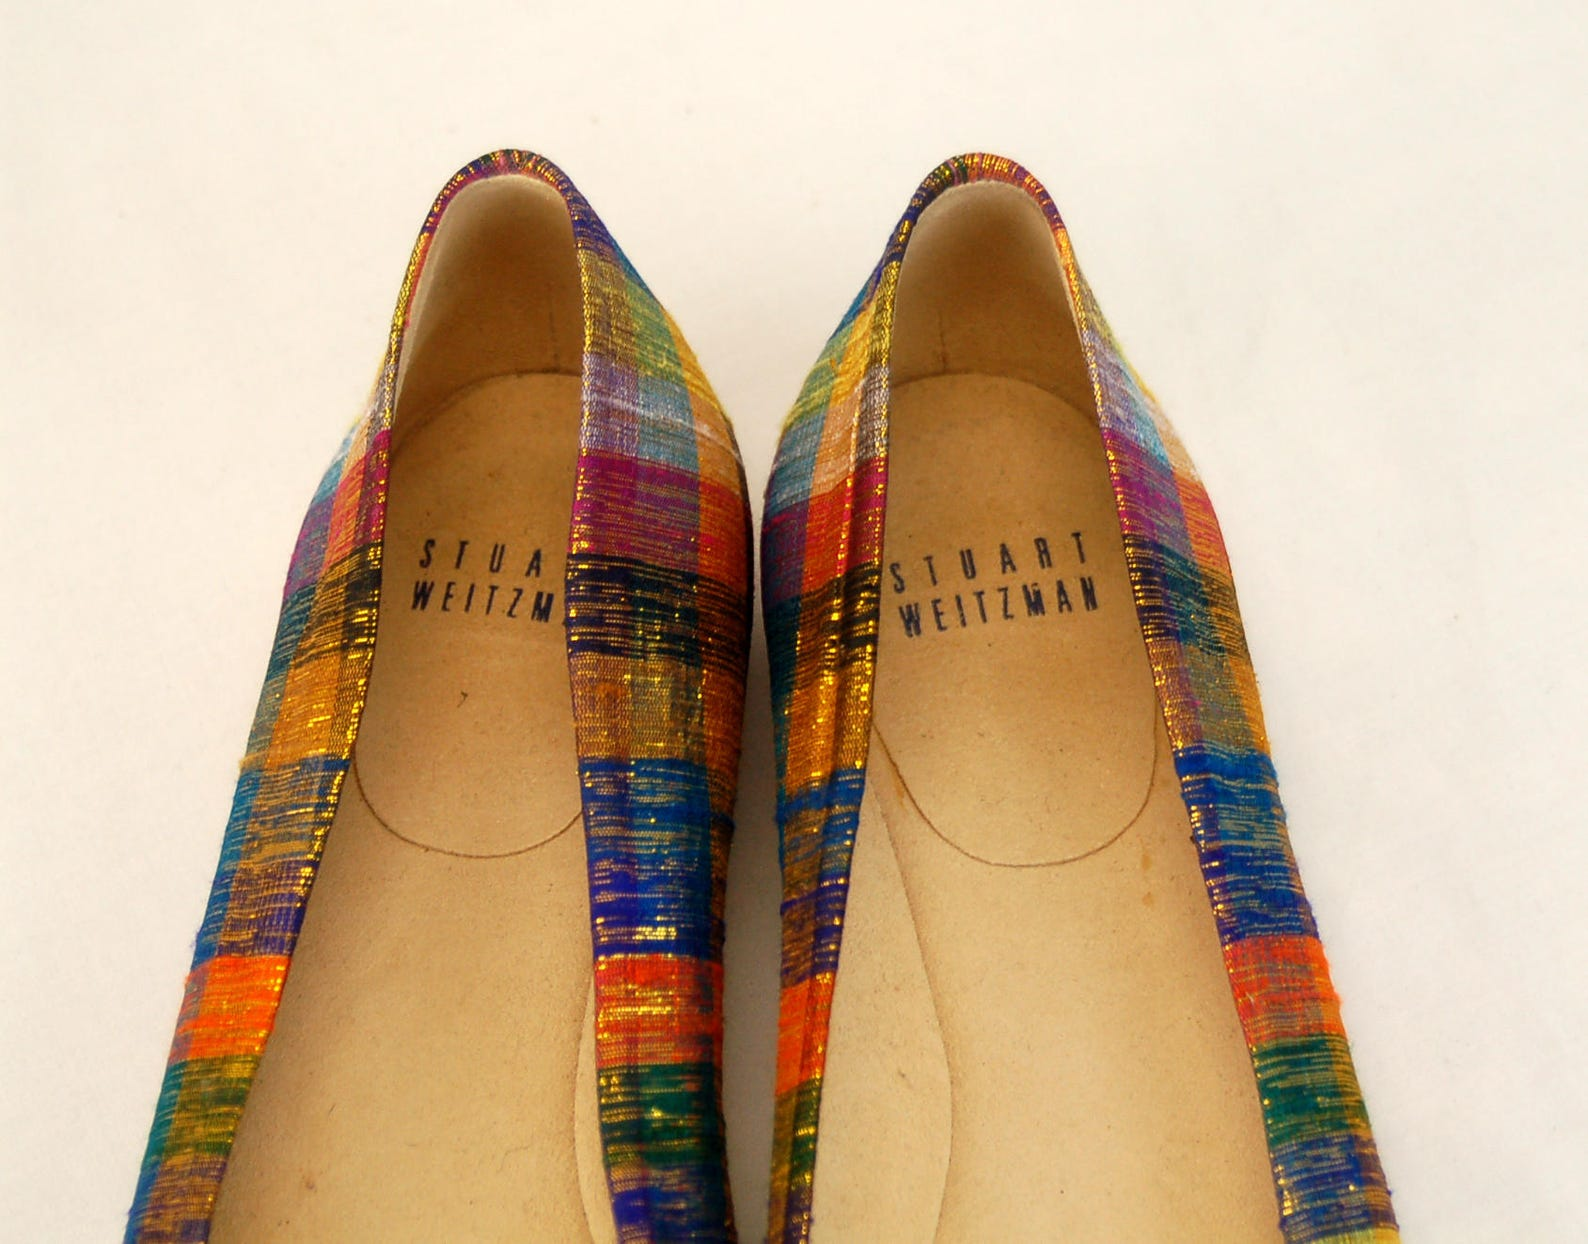 stuart weitzman shoes ballet flats plaid fabric metallic gold size 7 m 1980s shoes